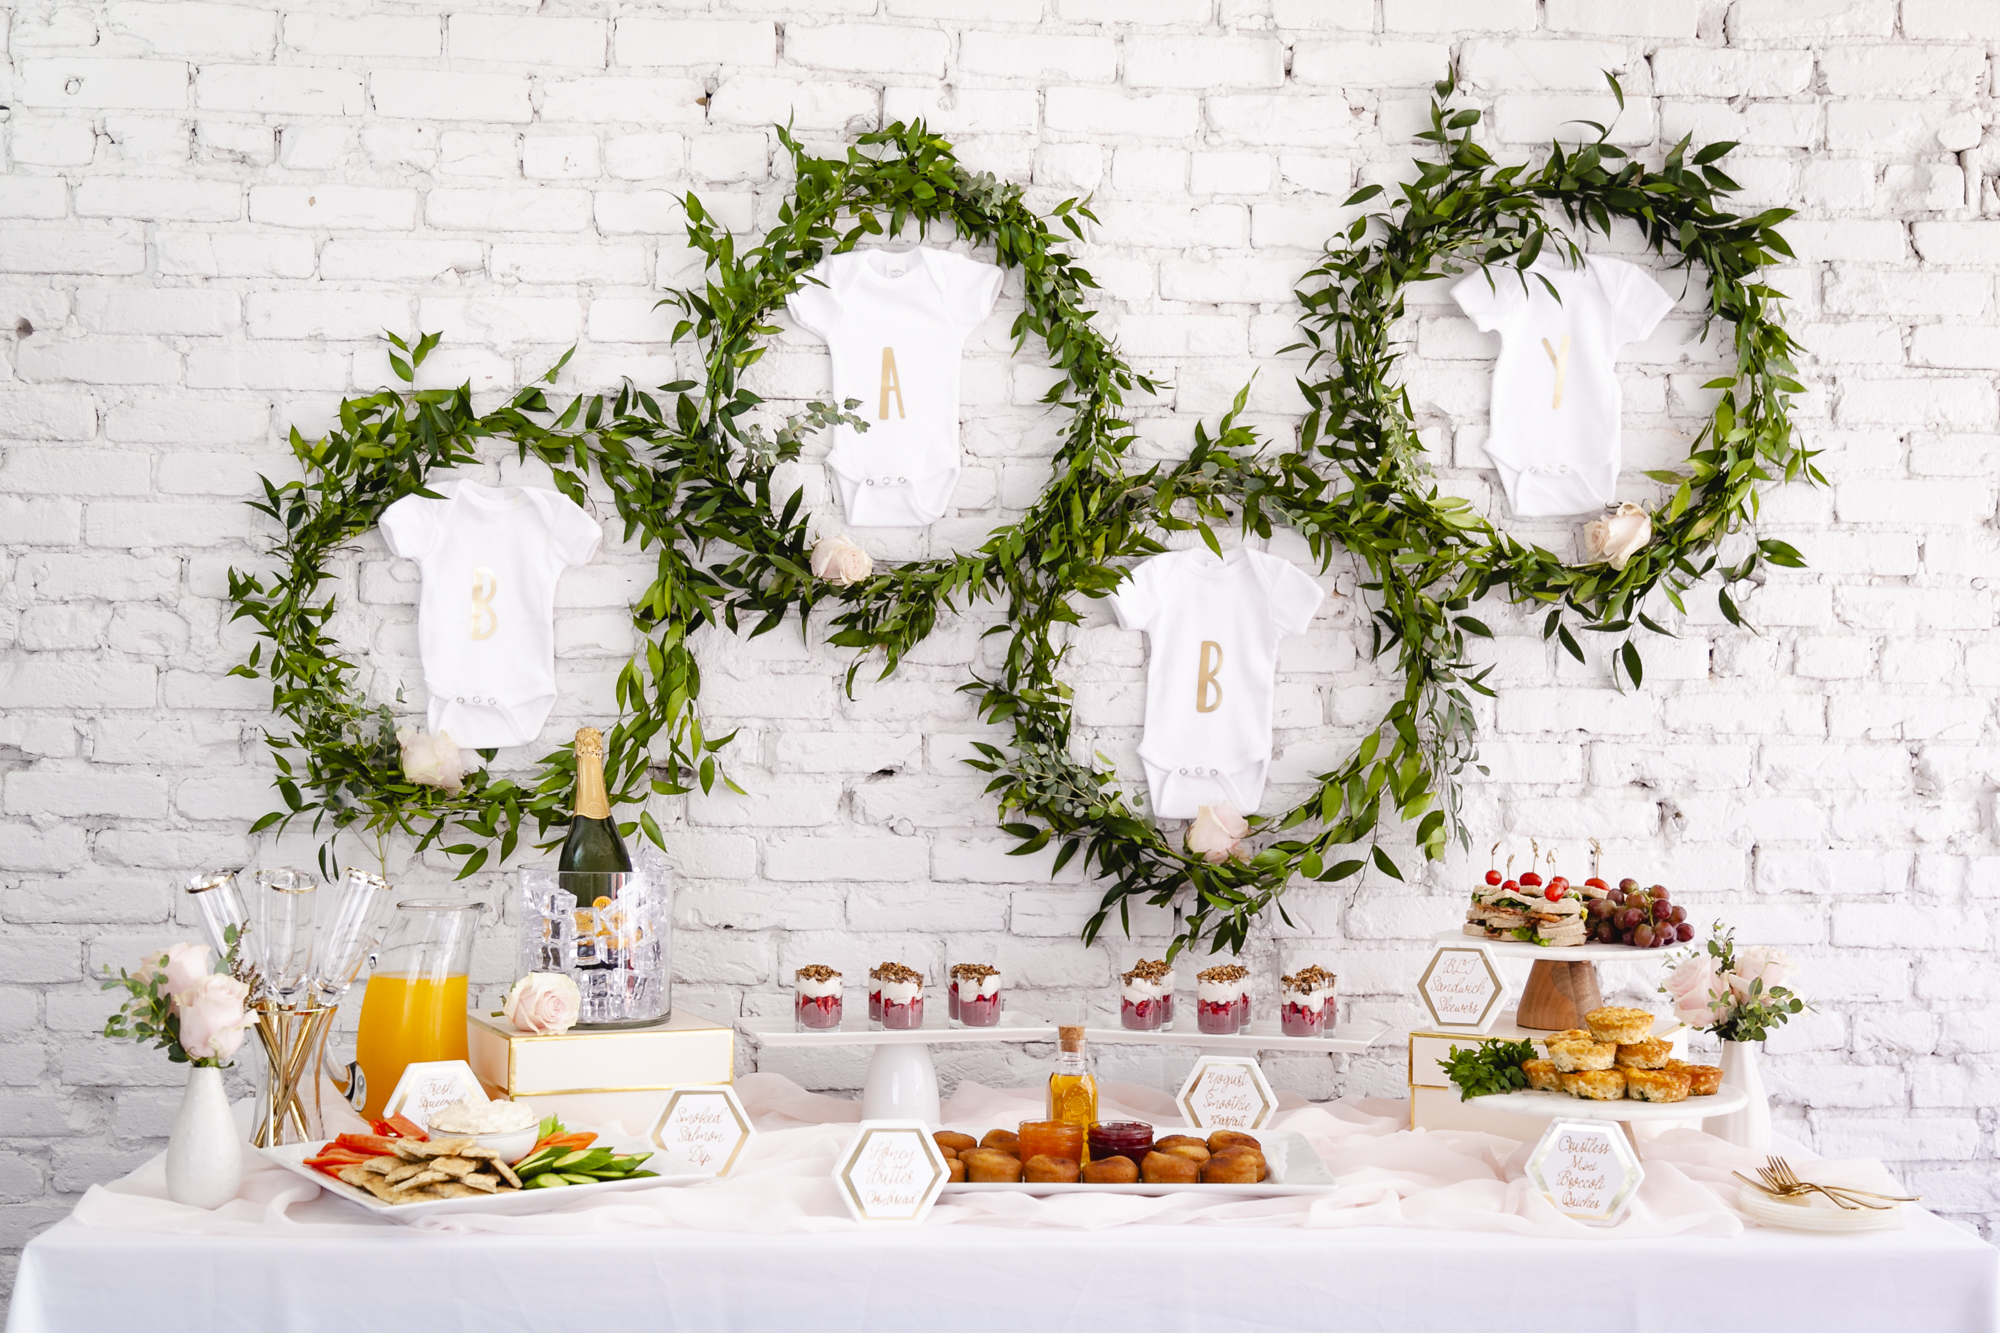 An elegant baby shower food set up. As styled by Mint Event Design for Bento Picnic www.minteventdesign.com